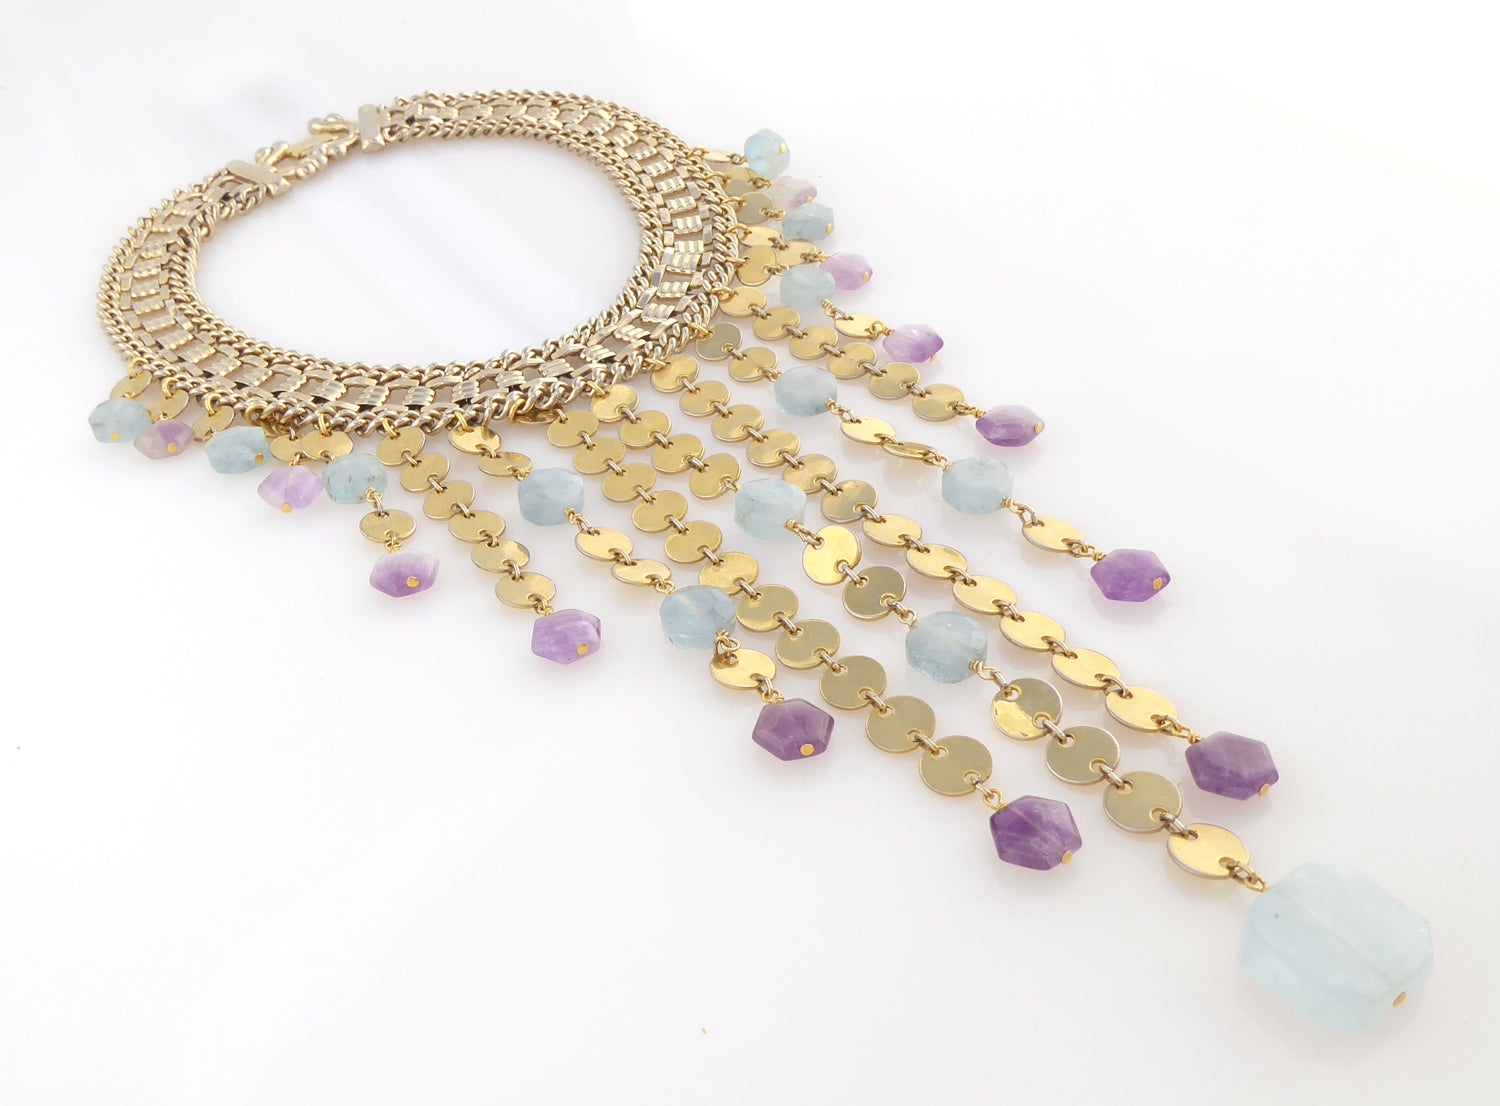 Carmeline aquamarine and amethyst necklace by Jenny Dayco 2